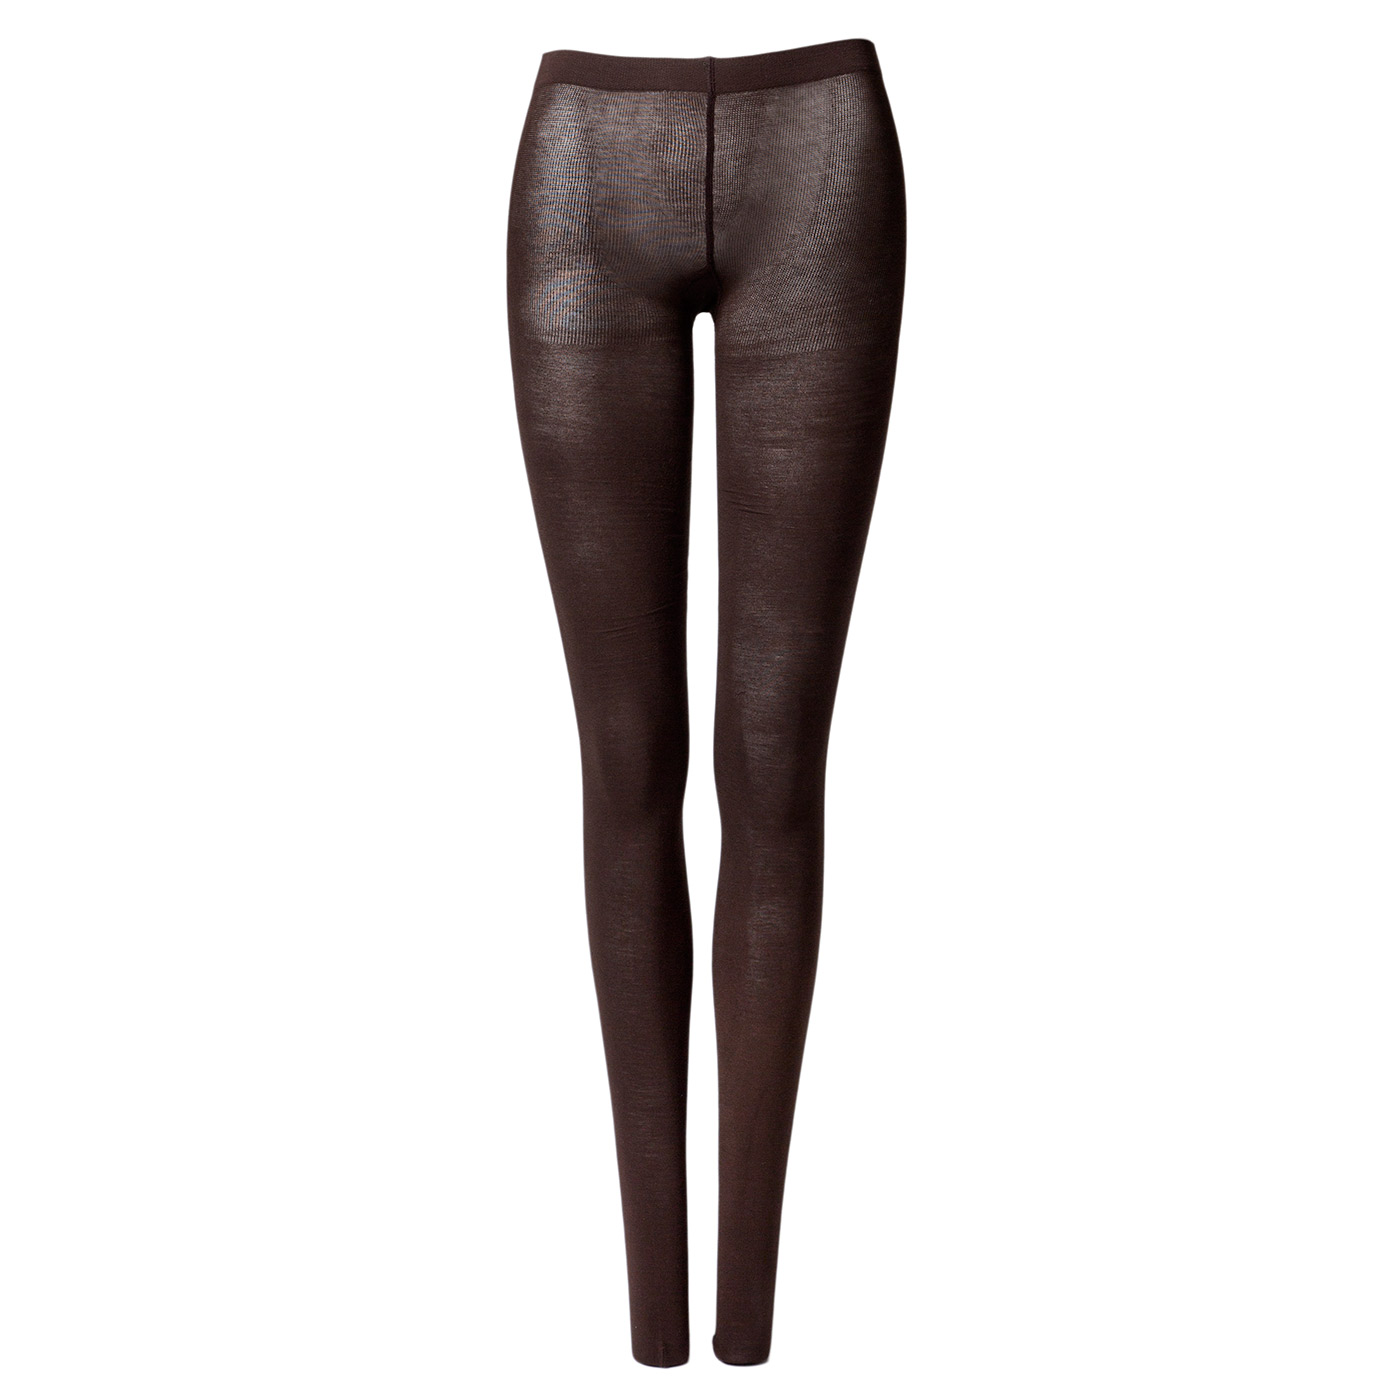 a5e2b6351 Maggies Organic Lightweight Fashion Tights Womens Apparel at Vickerey